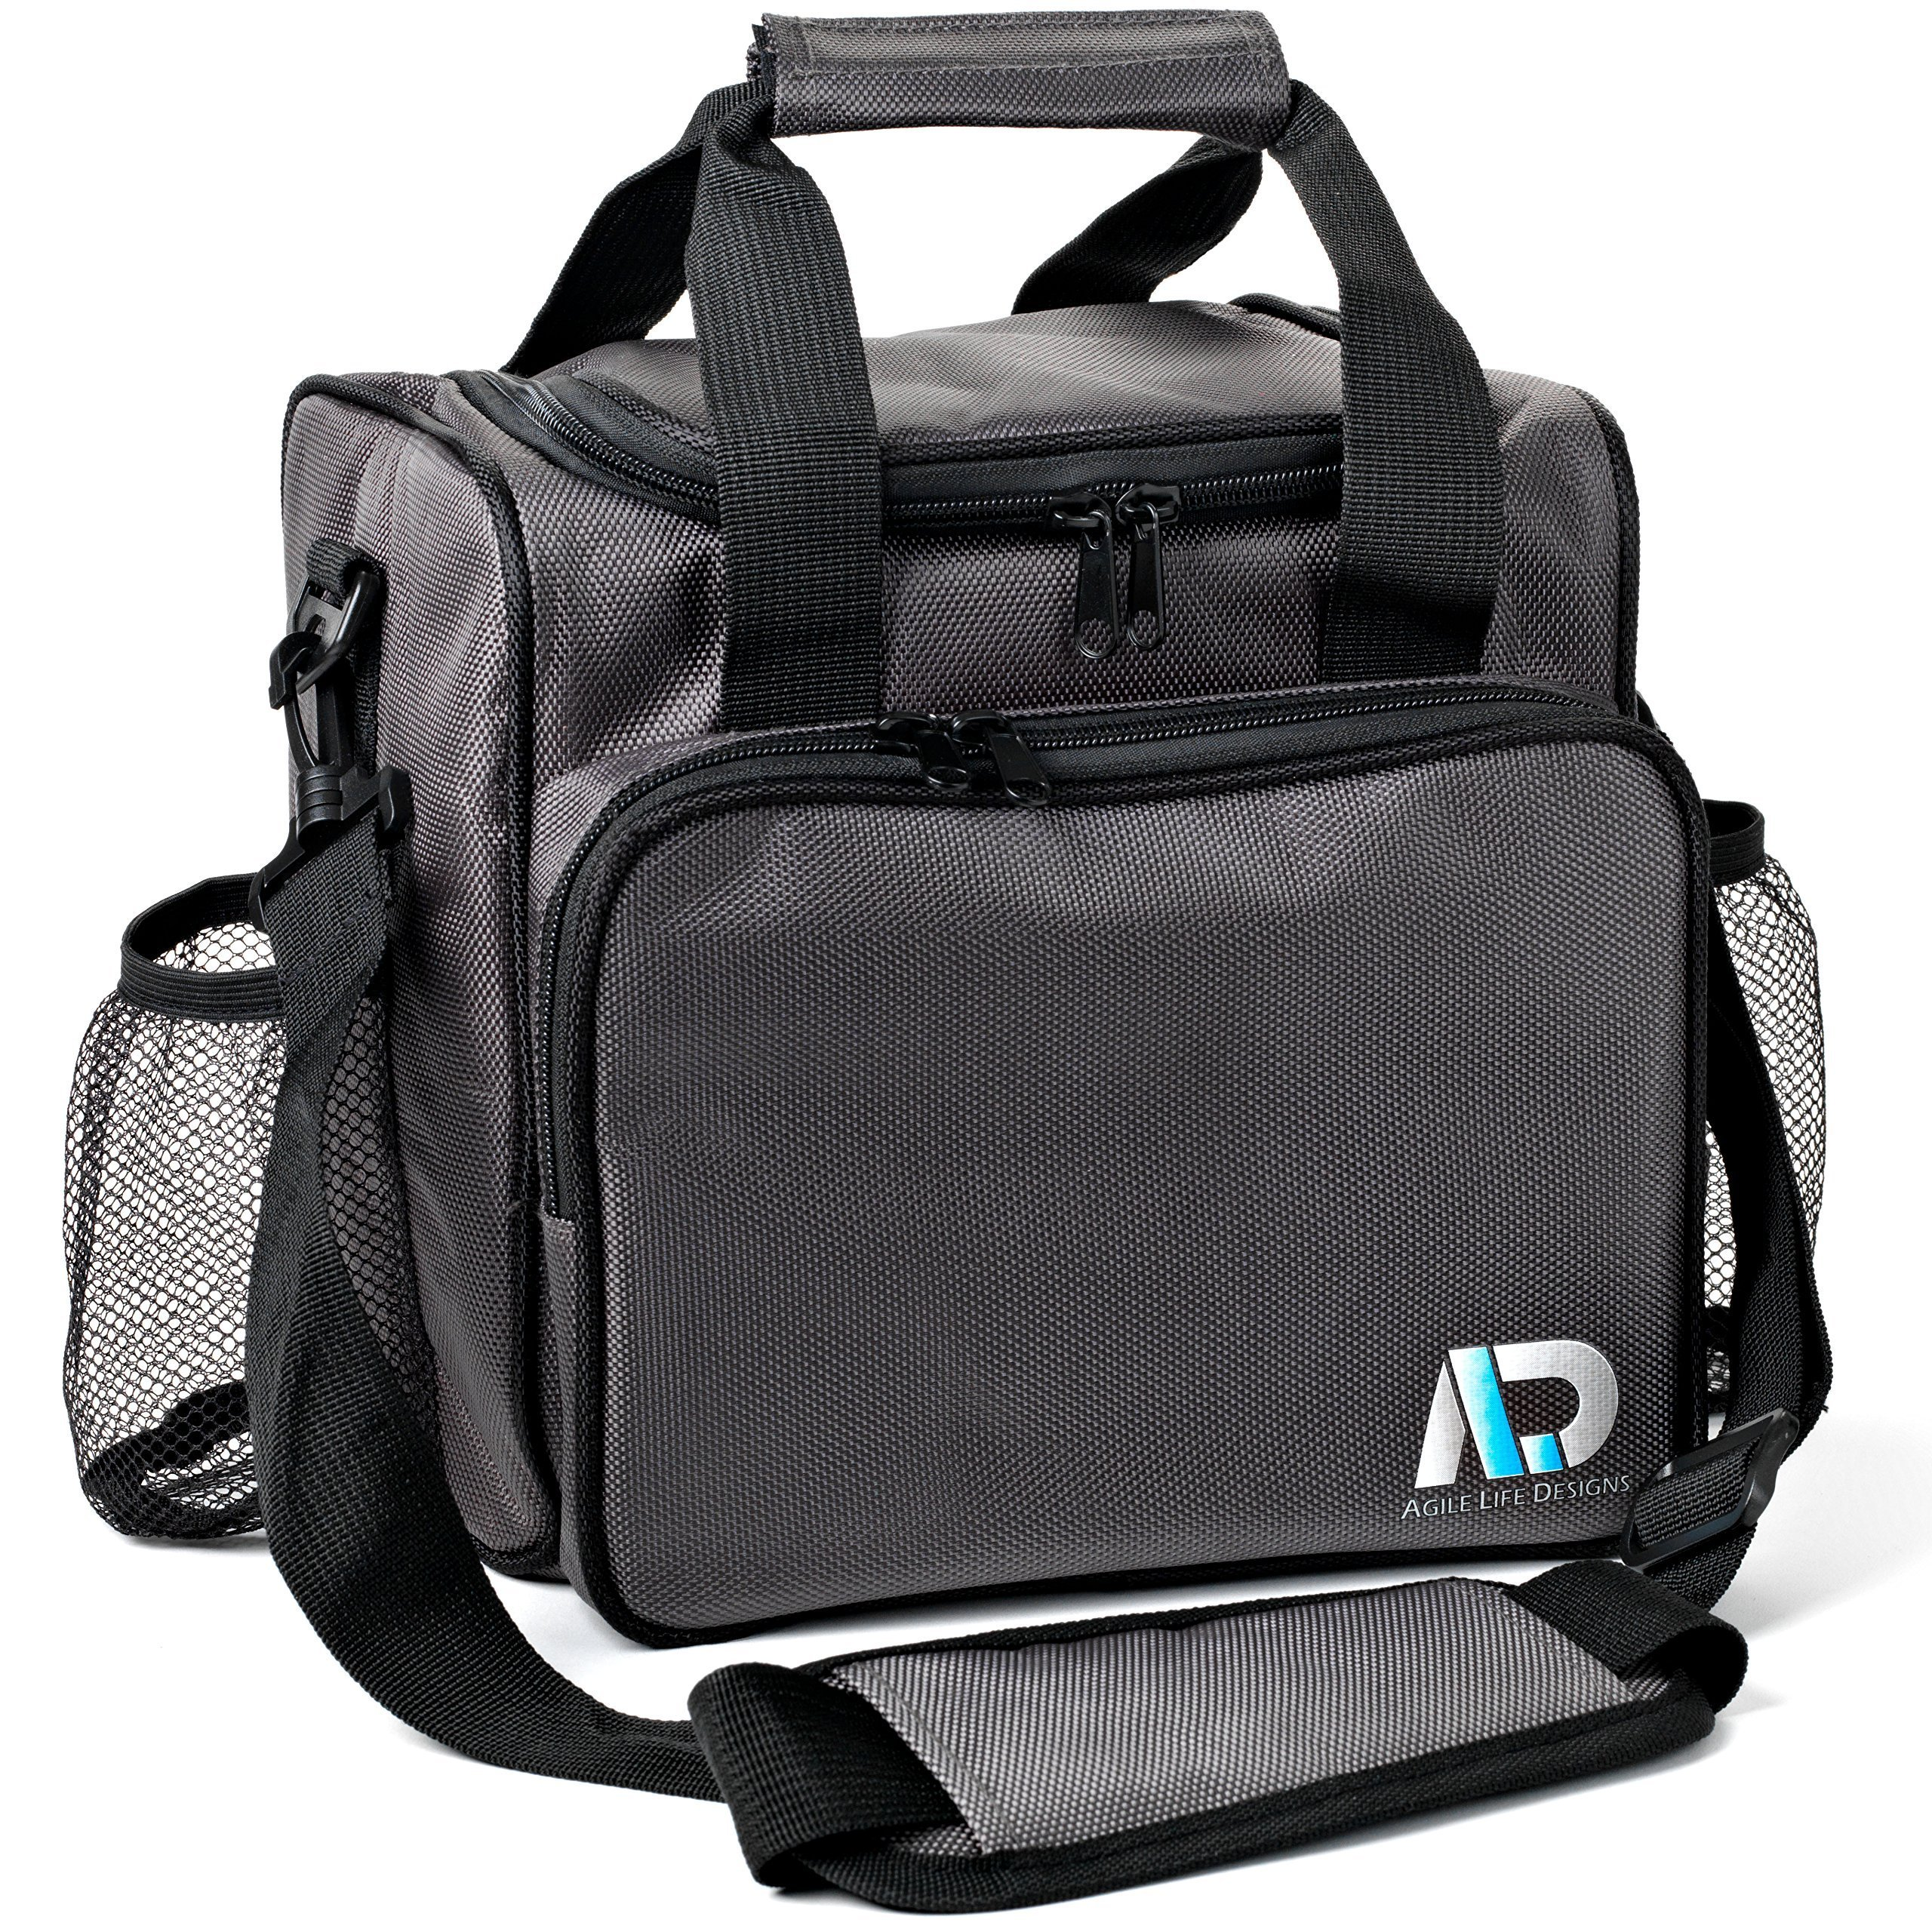 Agile Life Designs Large Lunchbox, Premium Quality Men and Women's Insulated Bag with 2 Mesh Bottle Pockets by AGILE LIFE DESIGNS